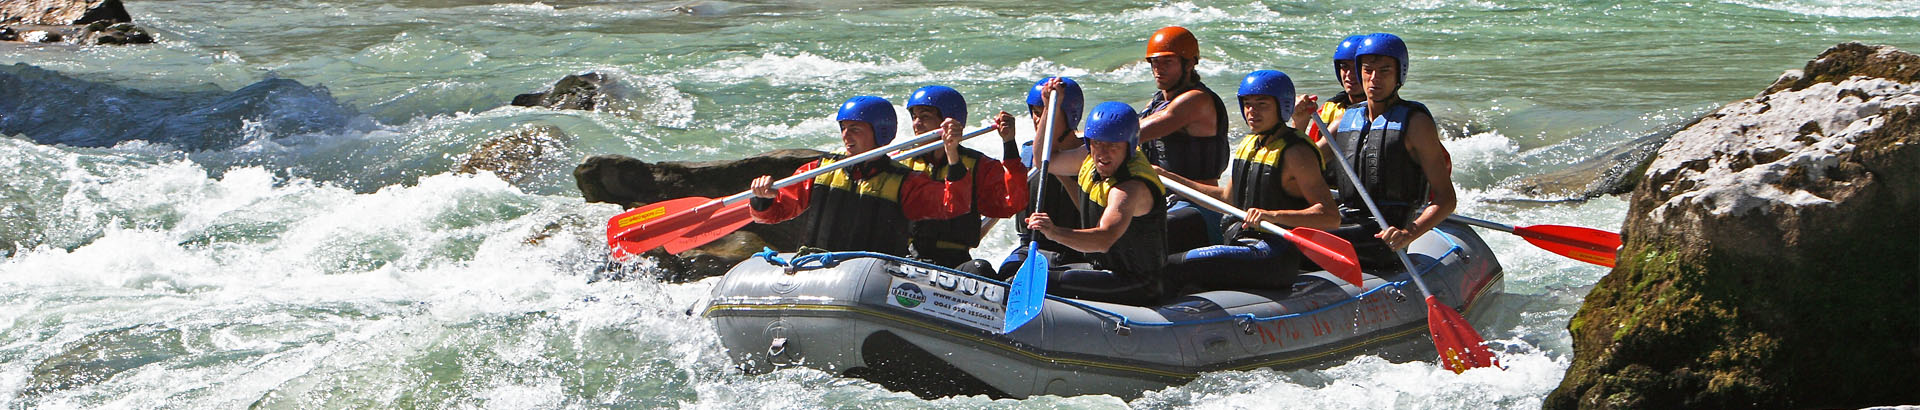 Rafting Saalach Lofer